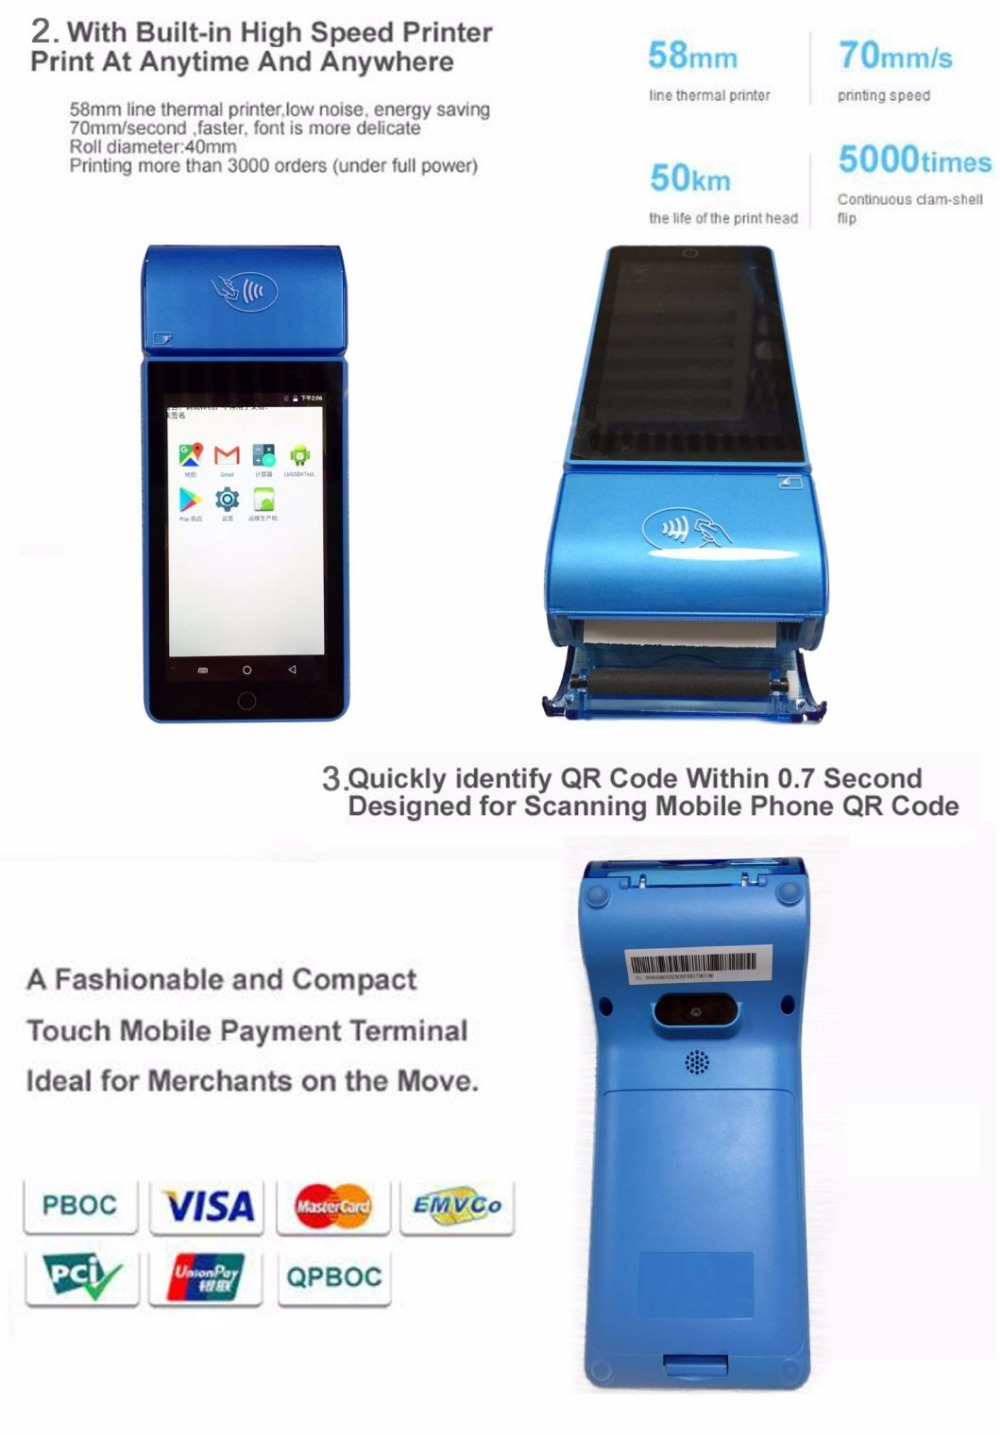 Handheld-Smart-POS-Terminals-Android-7-0-Handheld-POS-Terminal-5-Inch-POS-Machine-Support-Electronic-Mobile-Payment-EMV-Pvi-Certificated-Mj-St8050b (1)